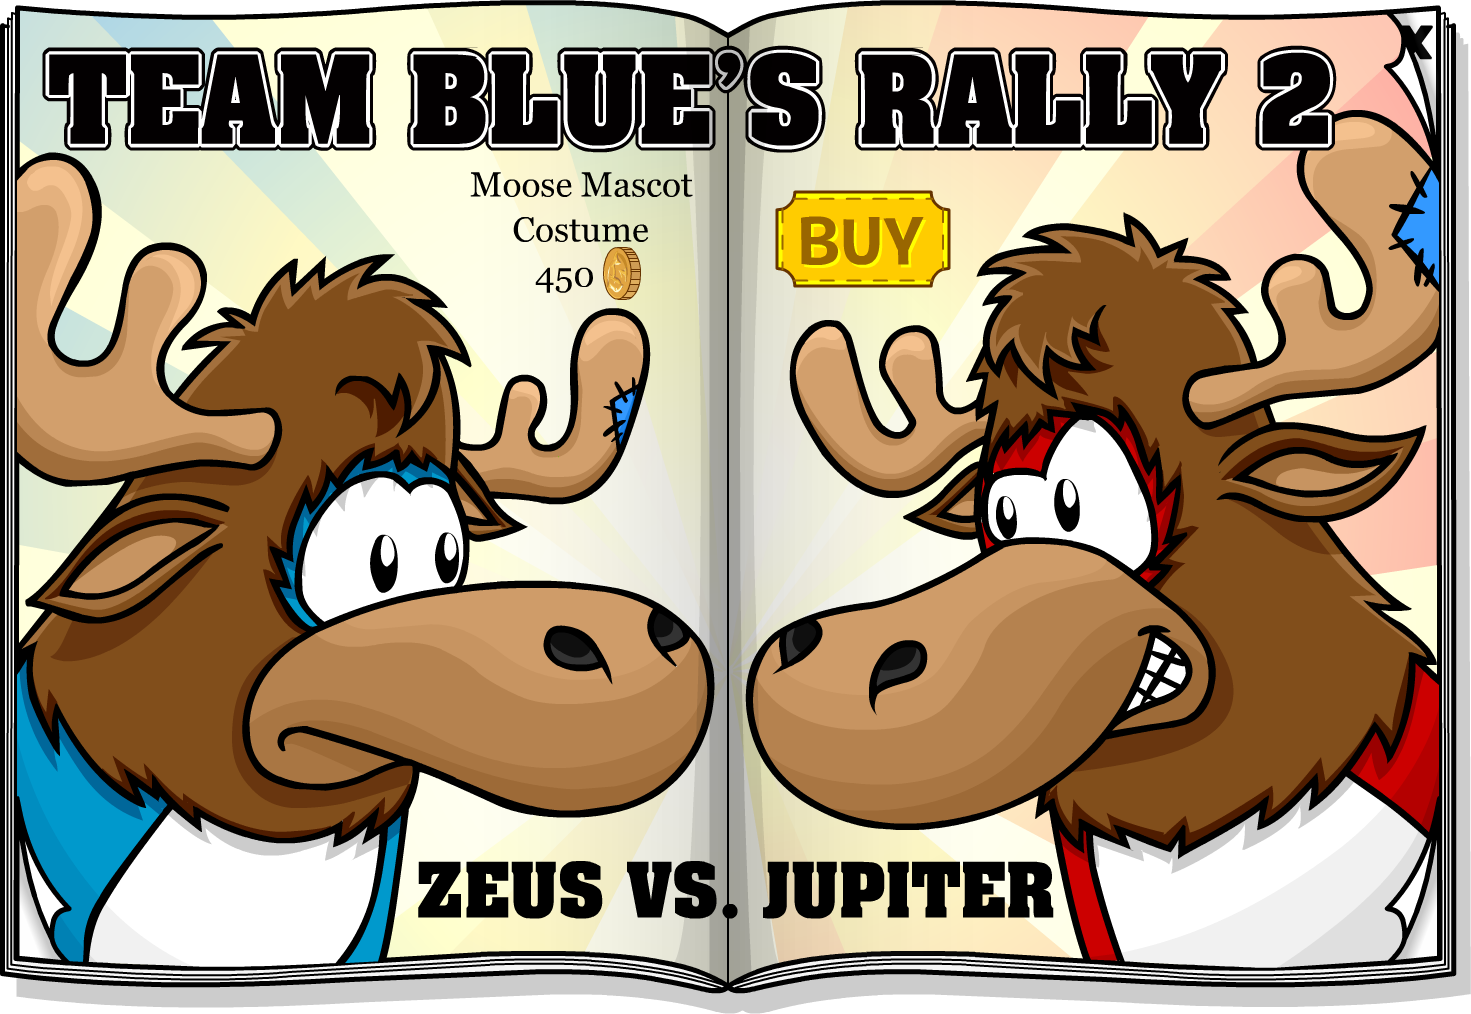 File:Team Blue's Rally 2 Zeus vs. Jupiter.png